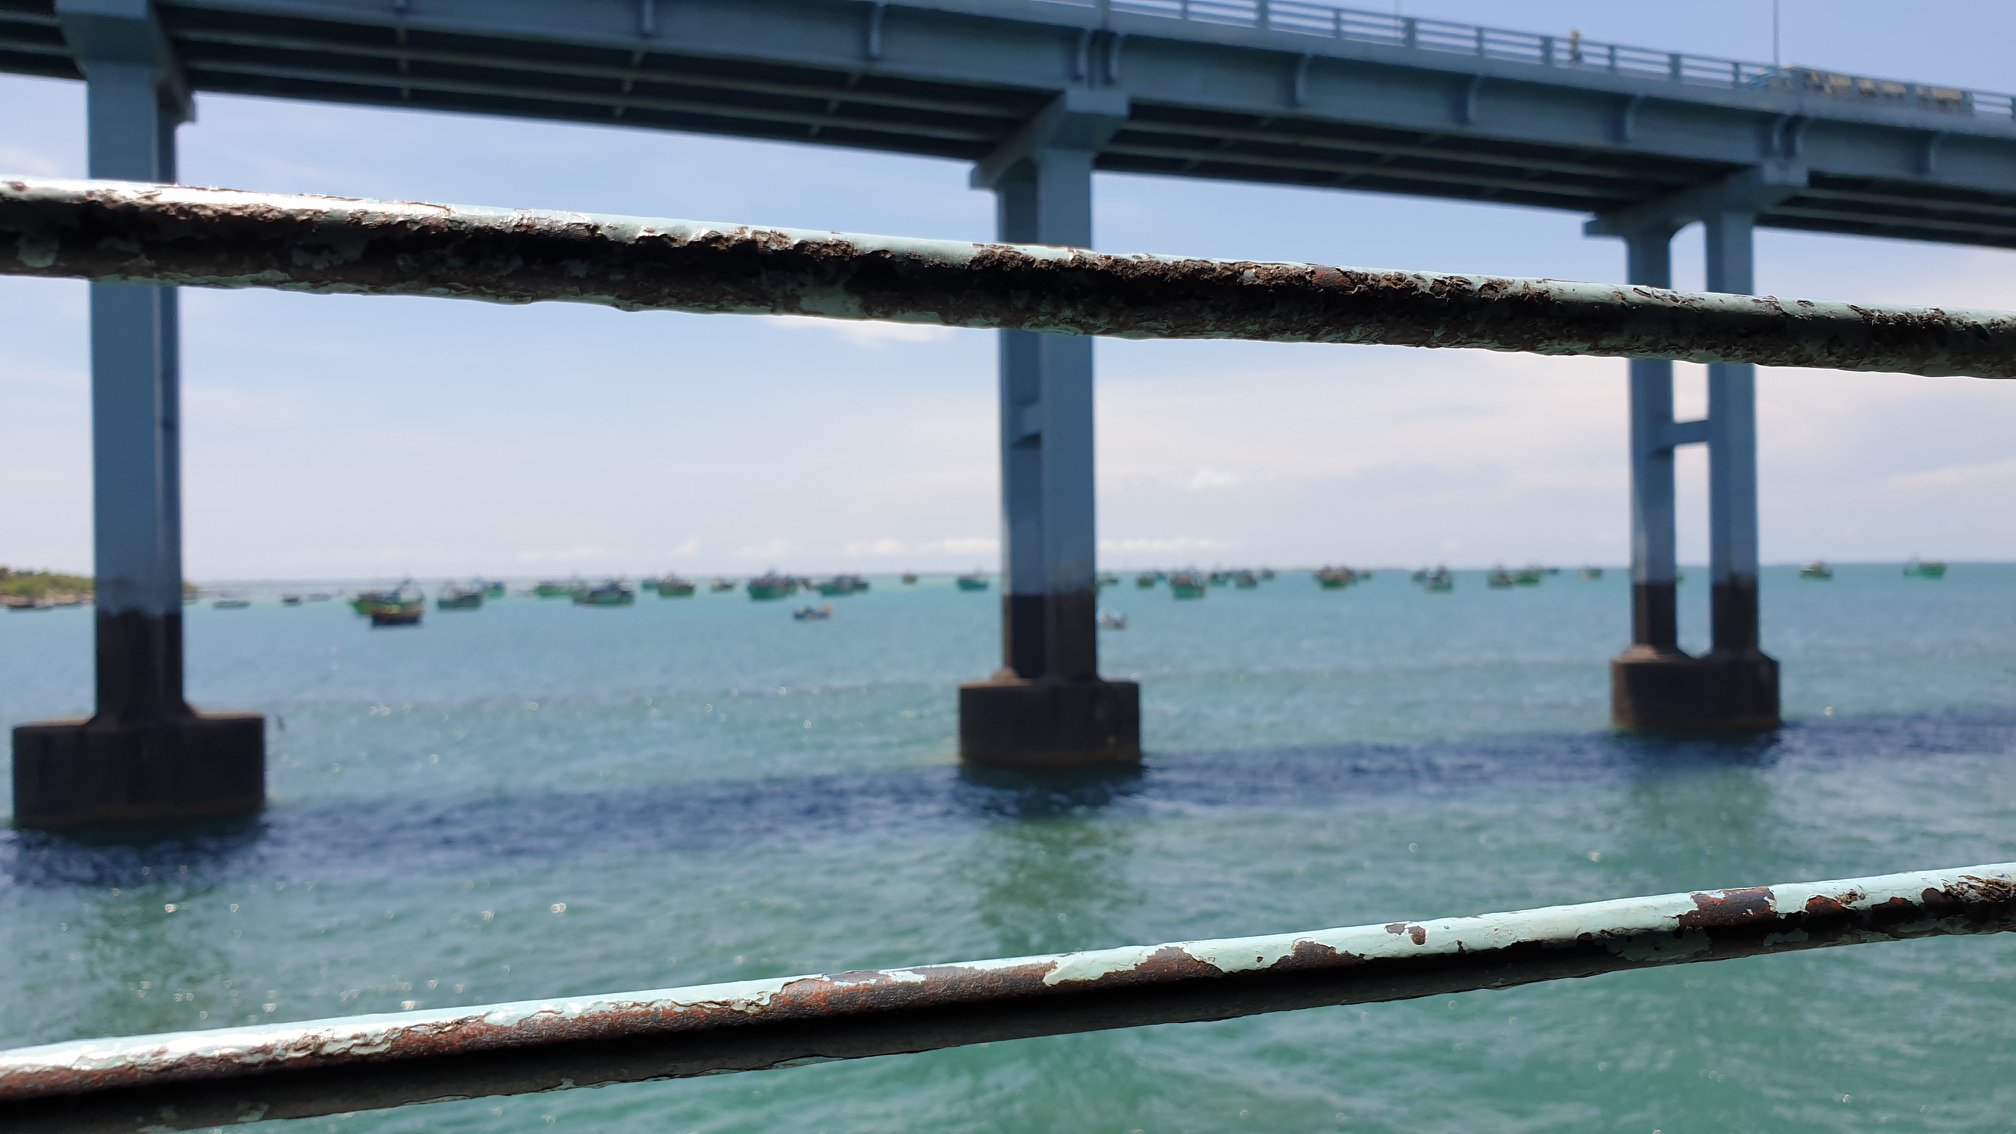 India's best Train Ride is probably the Pamban Bridge over Palk Bay in Tamil Nadu